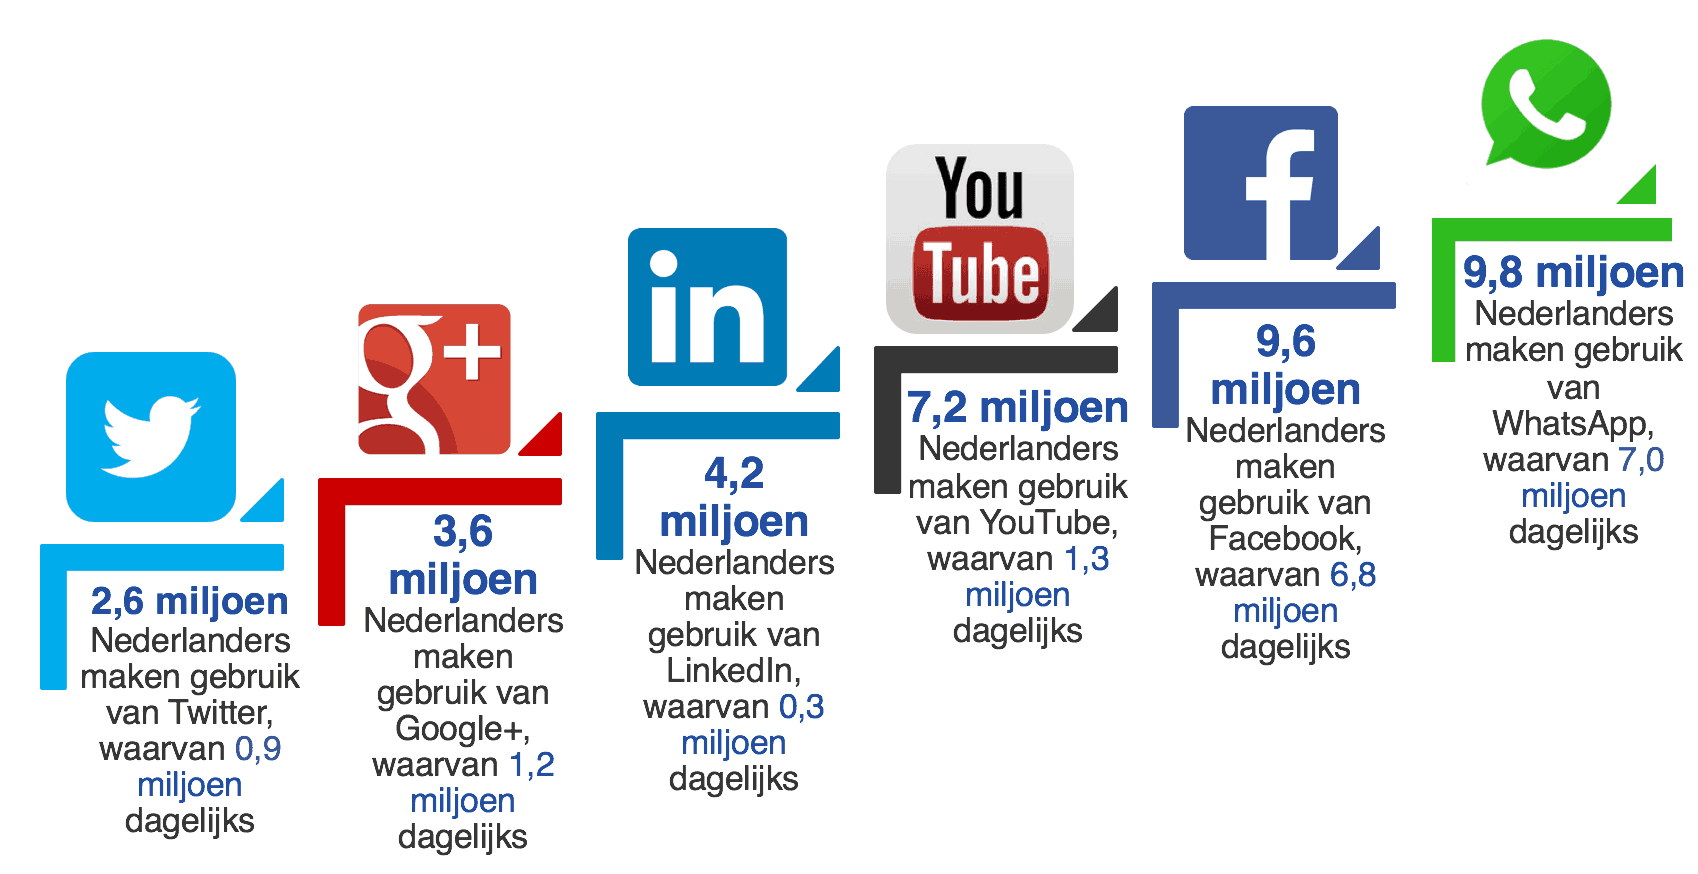 prescriptio marketing reclame media: gebruik sociale media in Nederland 2016